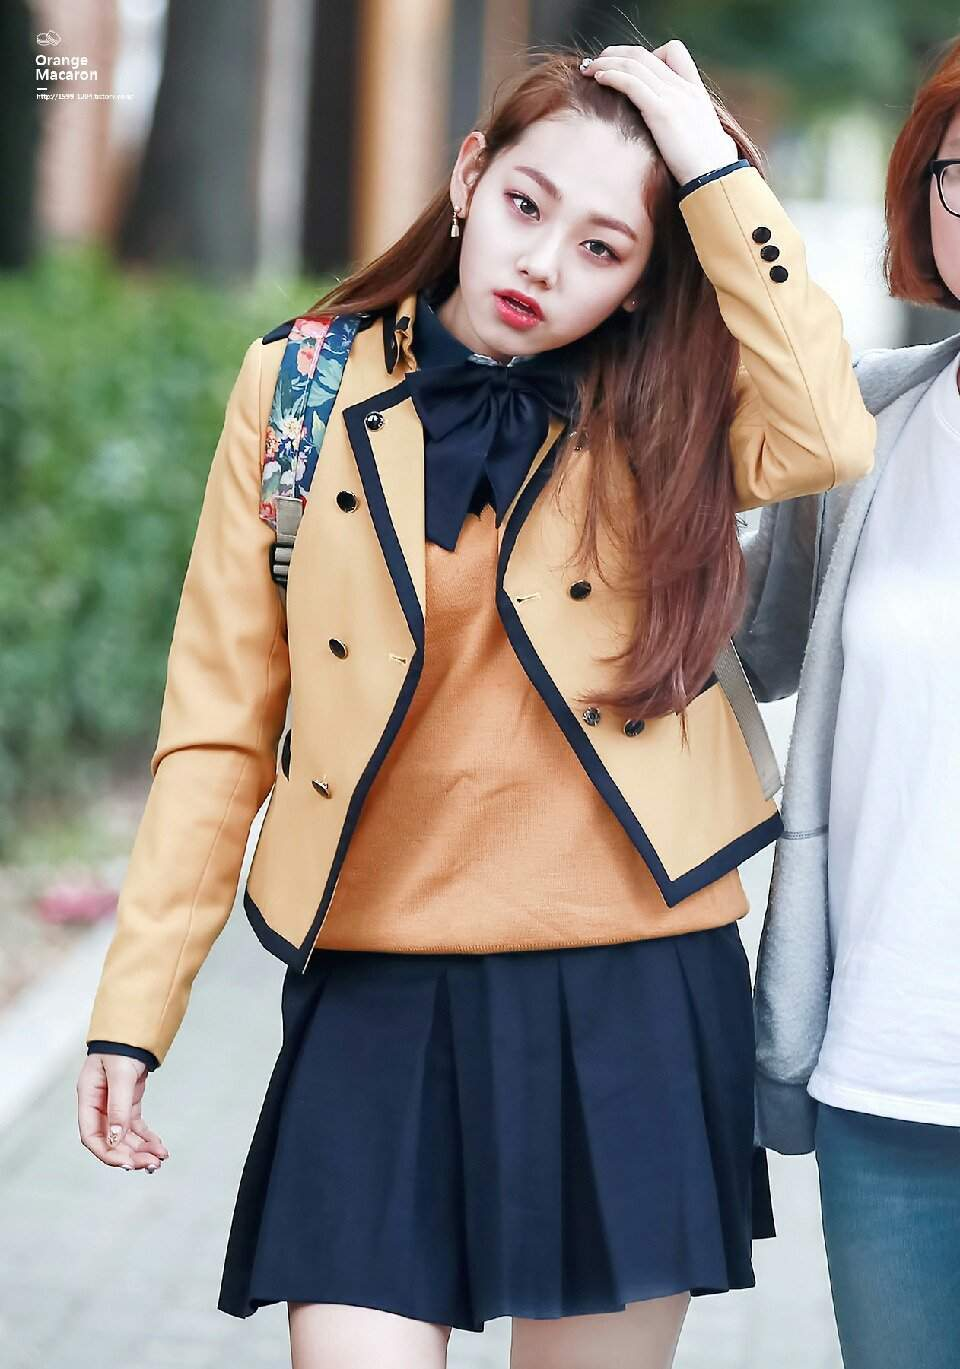 Gugudans Mina Continues To Lose Weight Even After Extreme